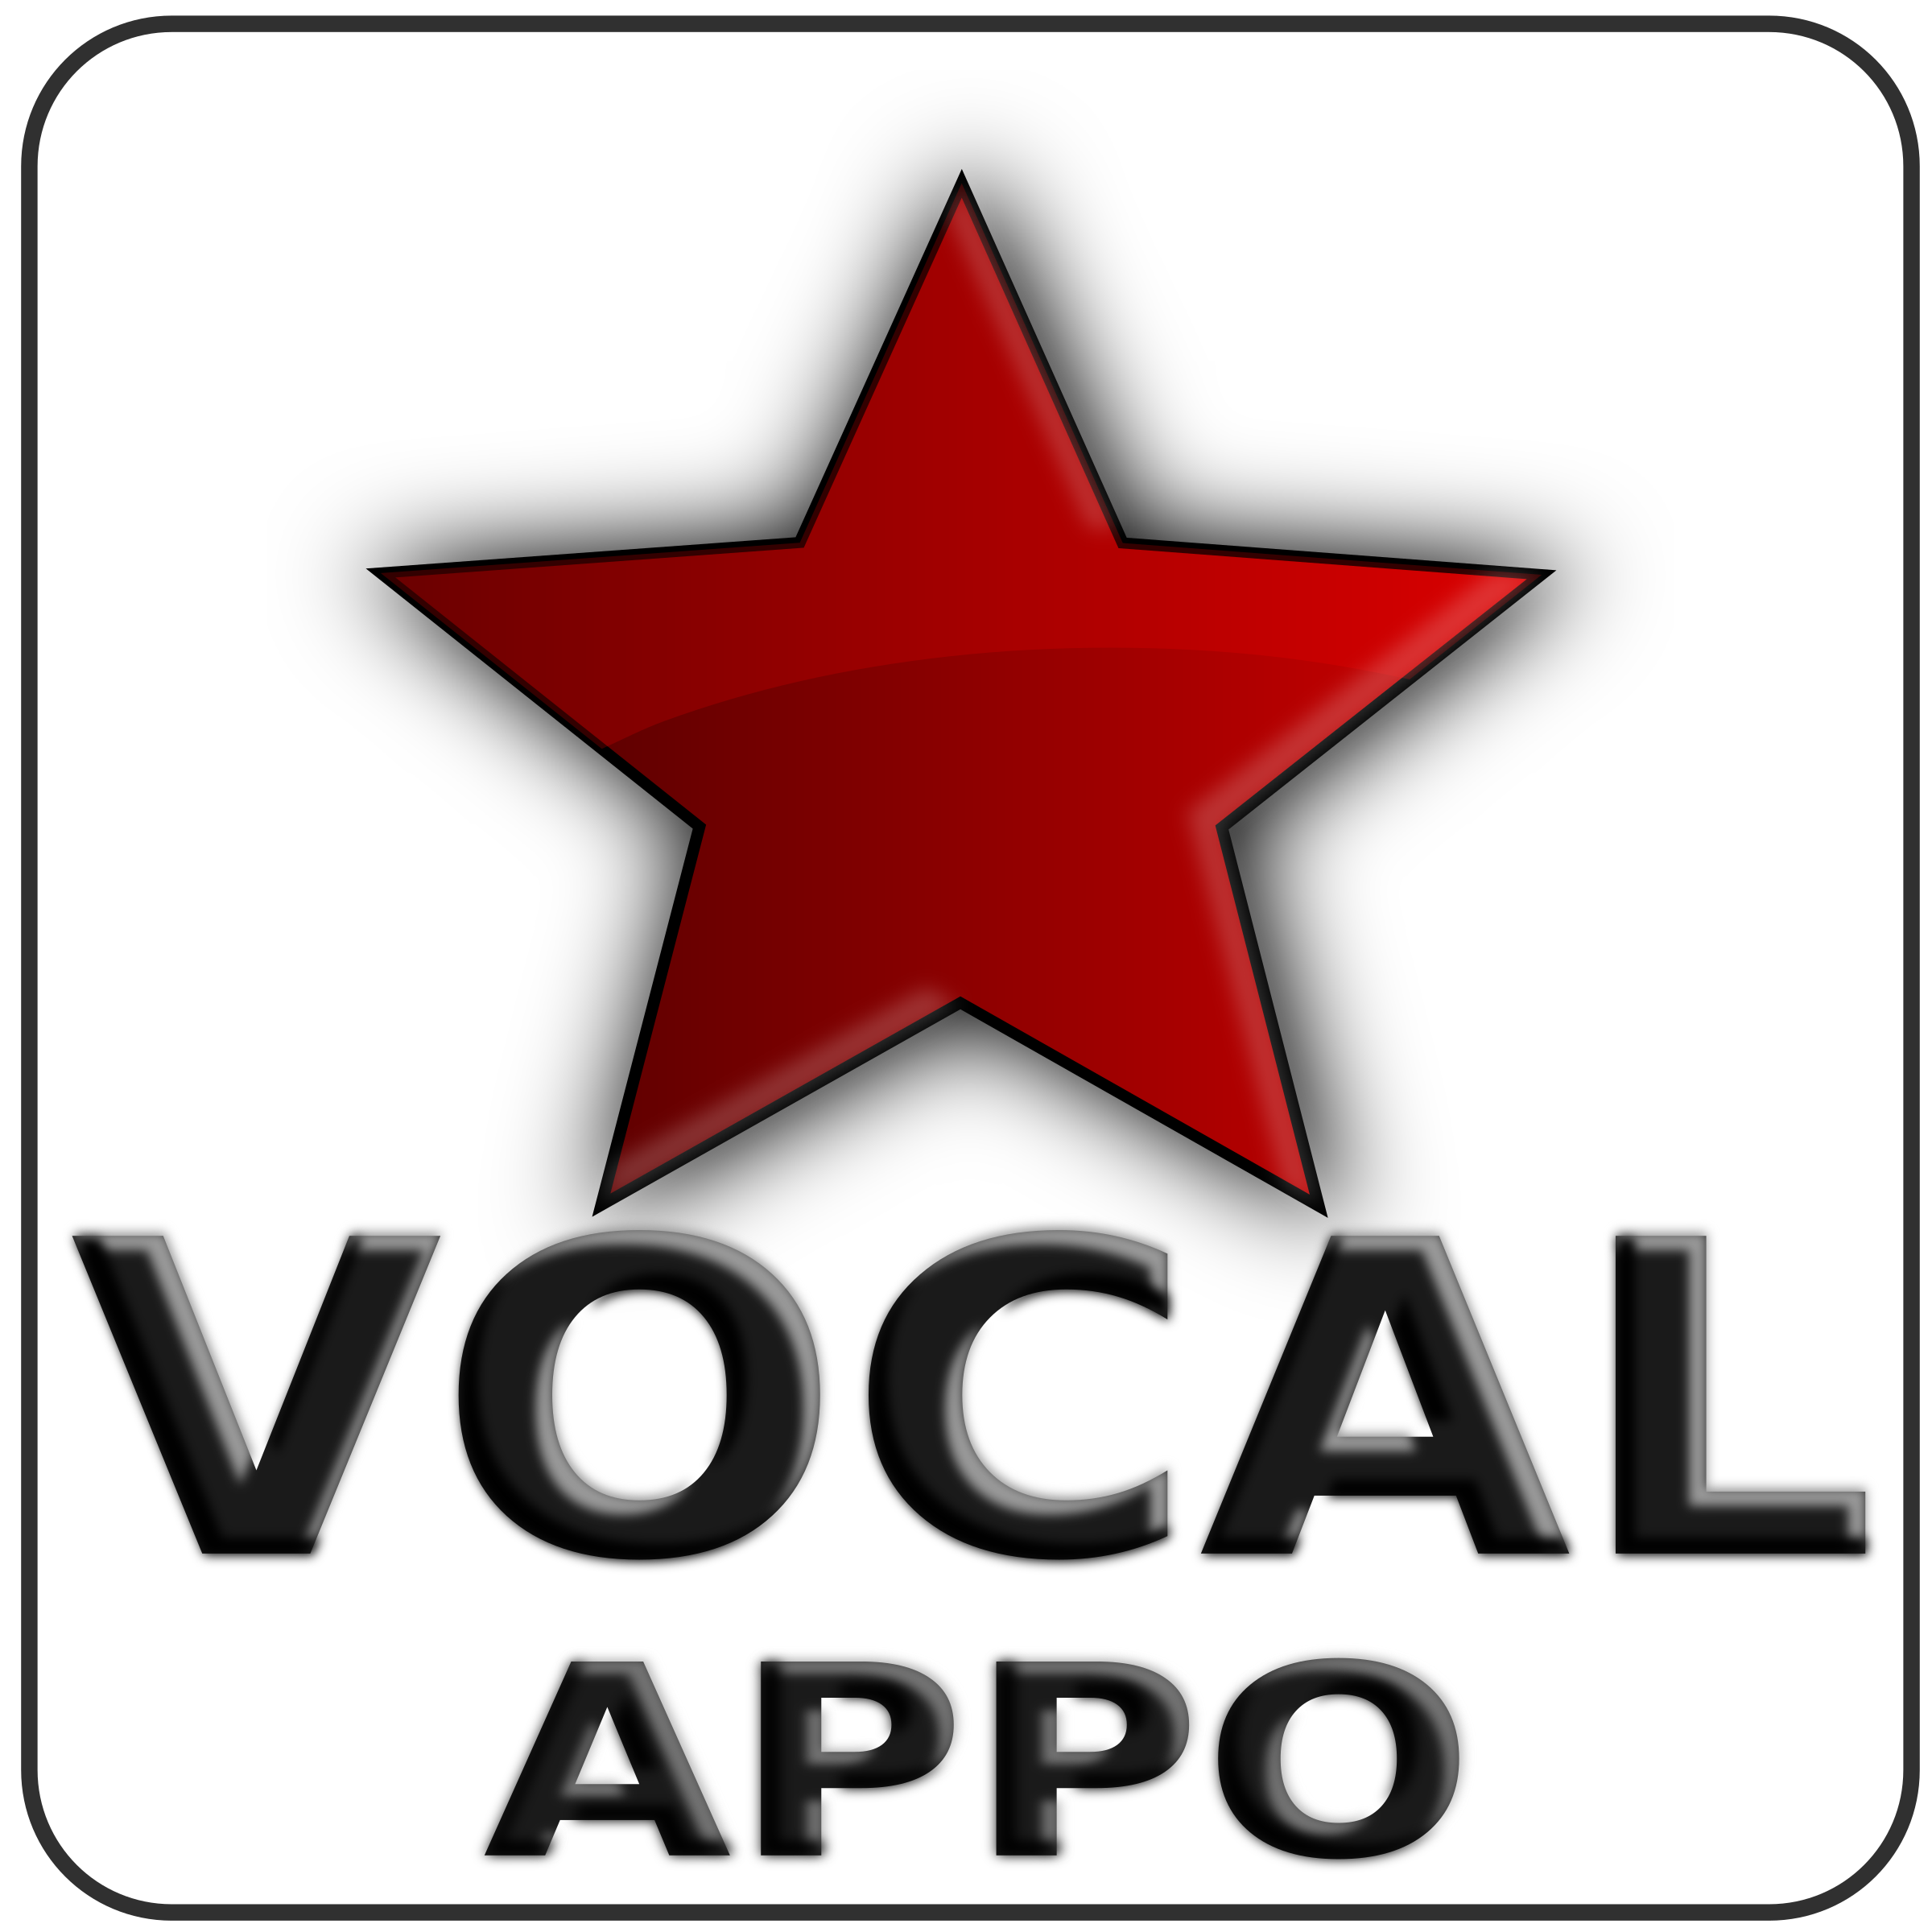 VocalLogo by fitorec